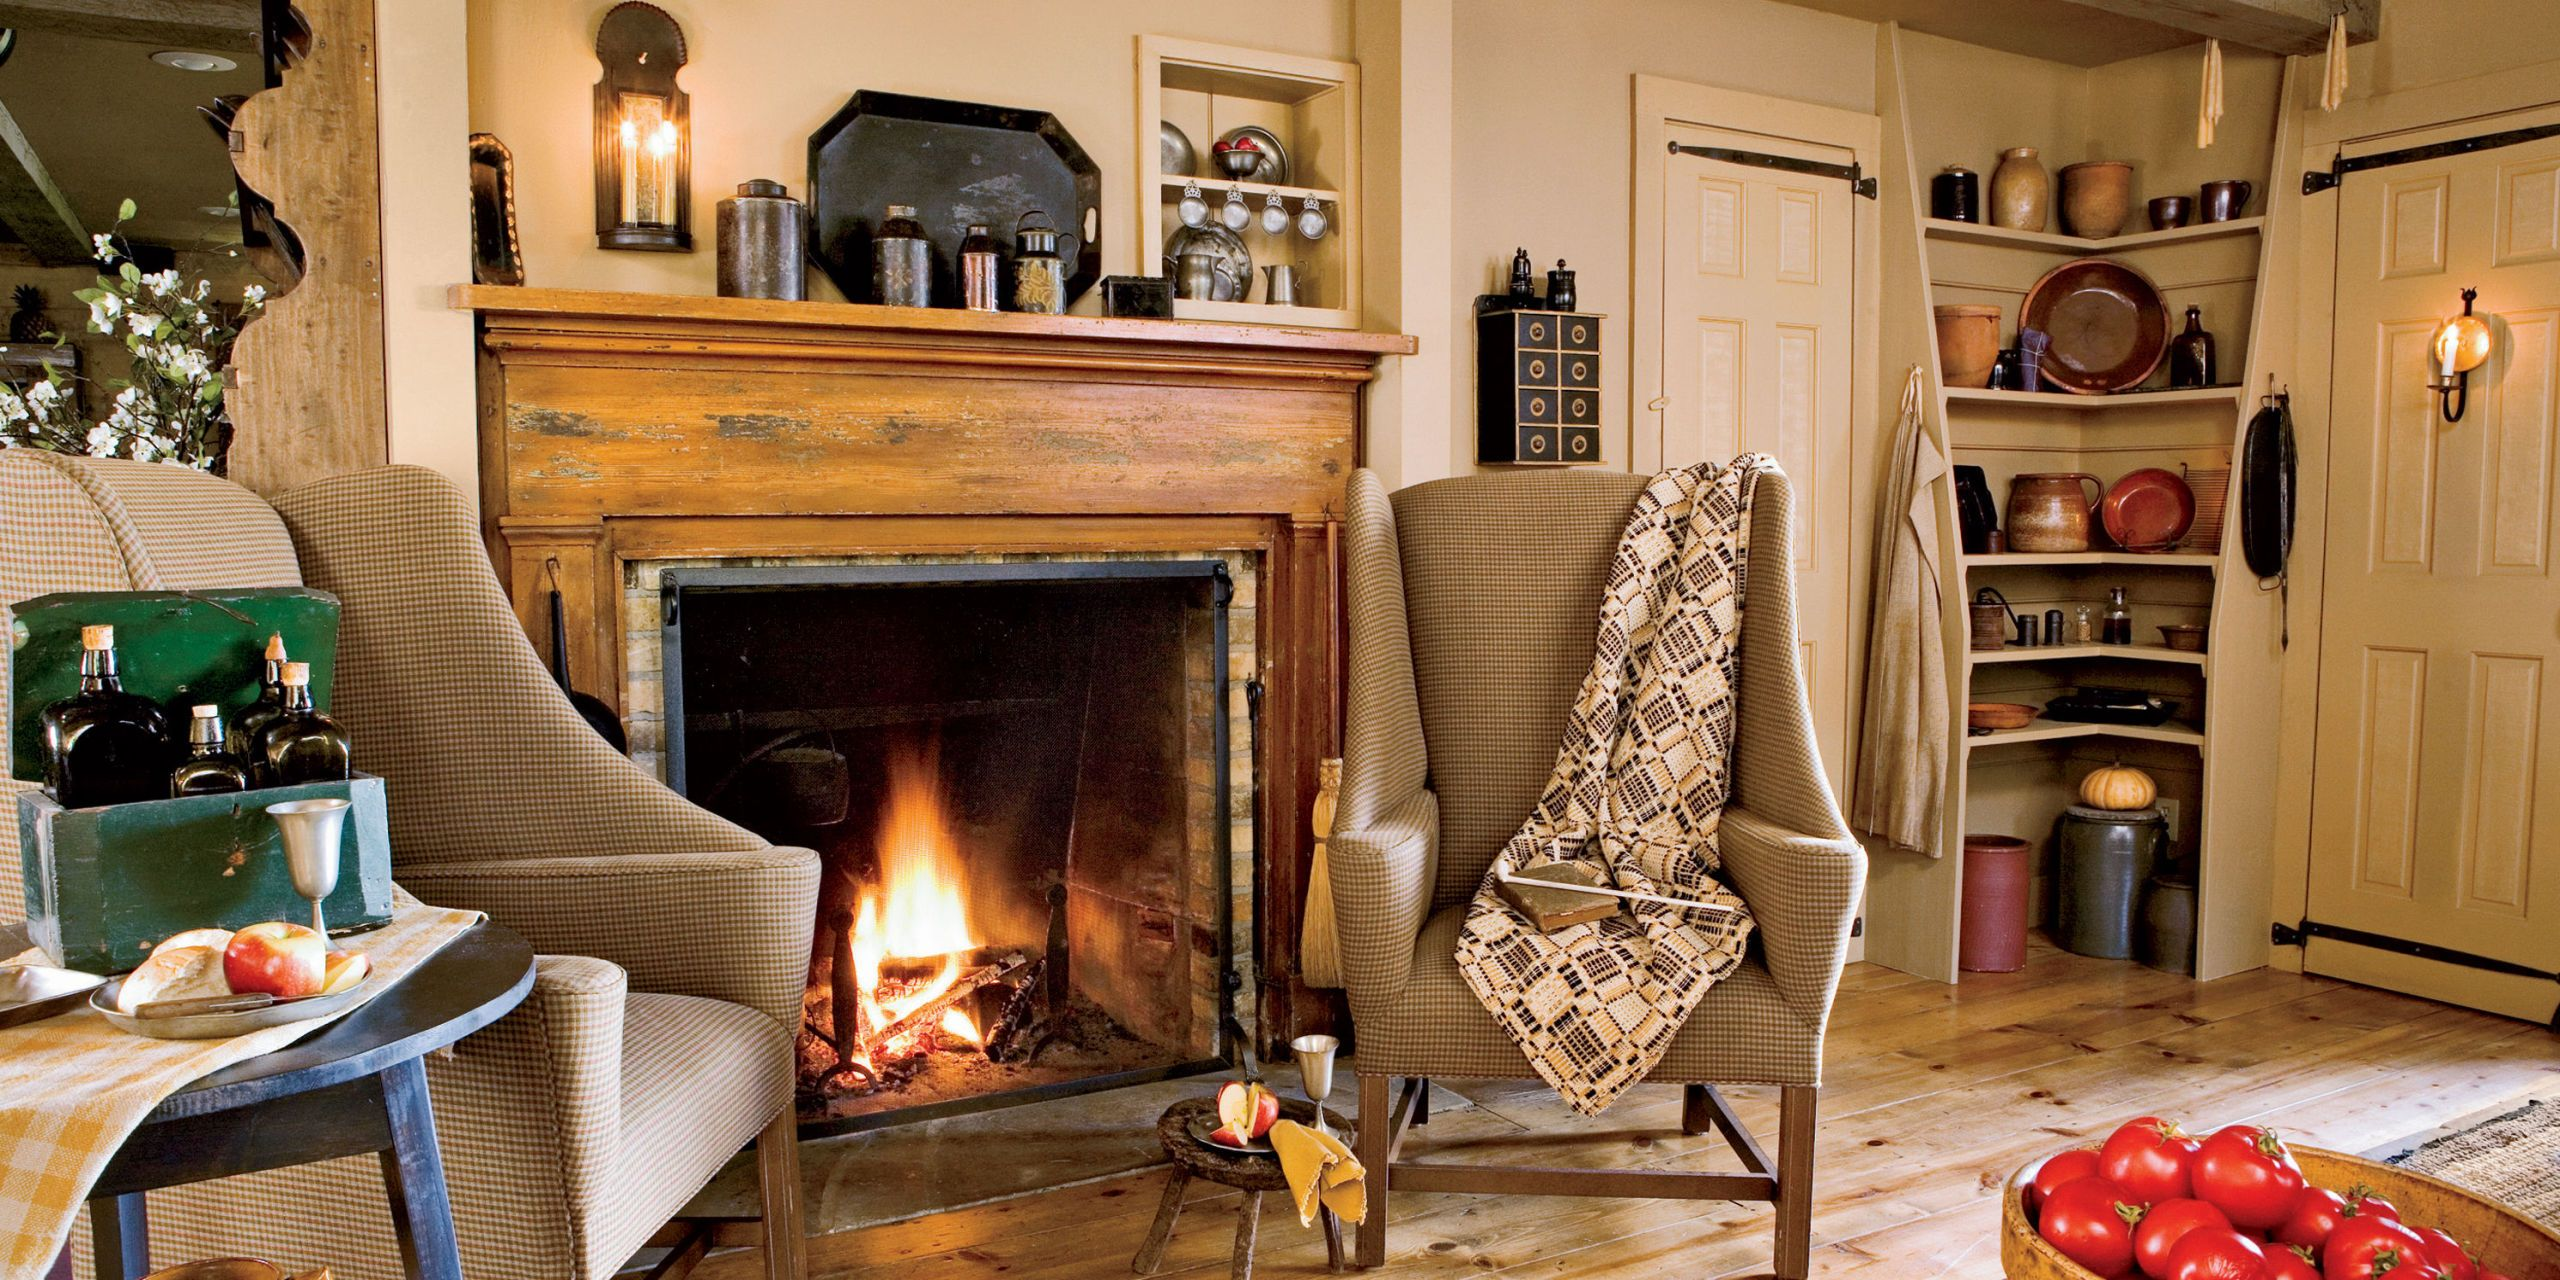 Charmant Stone, Slate, Wood, And More: Get Inspired To Re Do Your Living Room With  Our Favorite Fireplace Designs And Mantel Ideas.